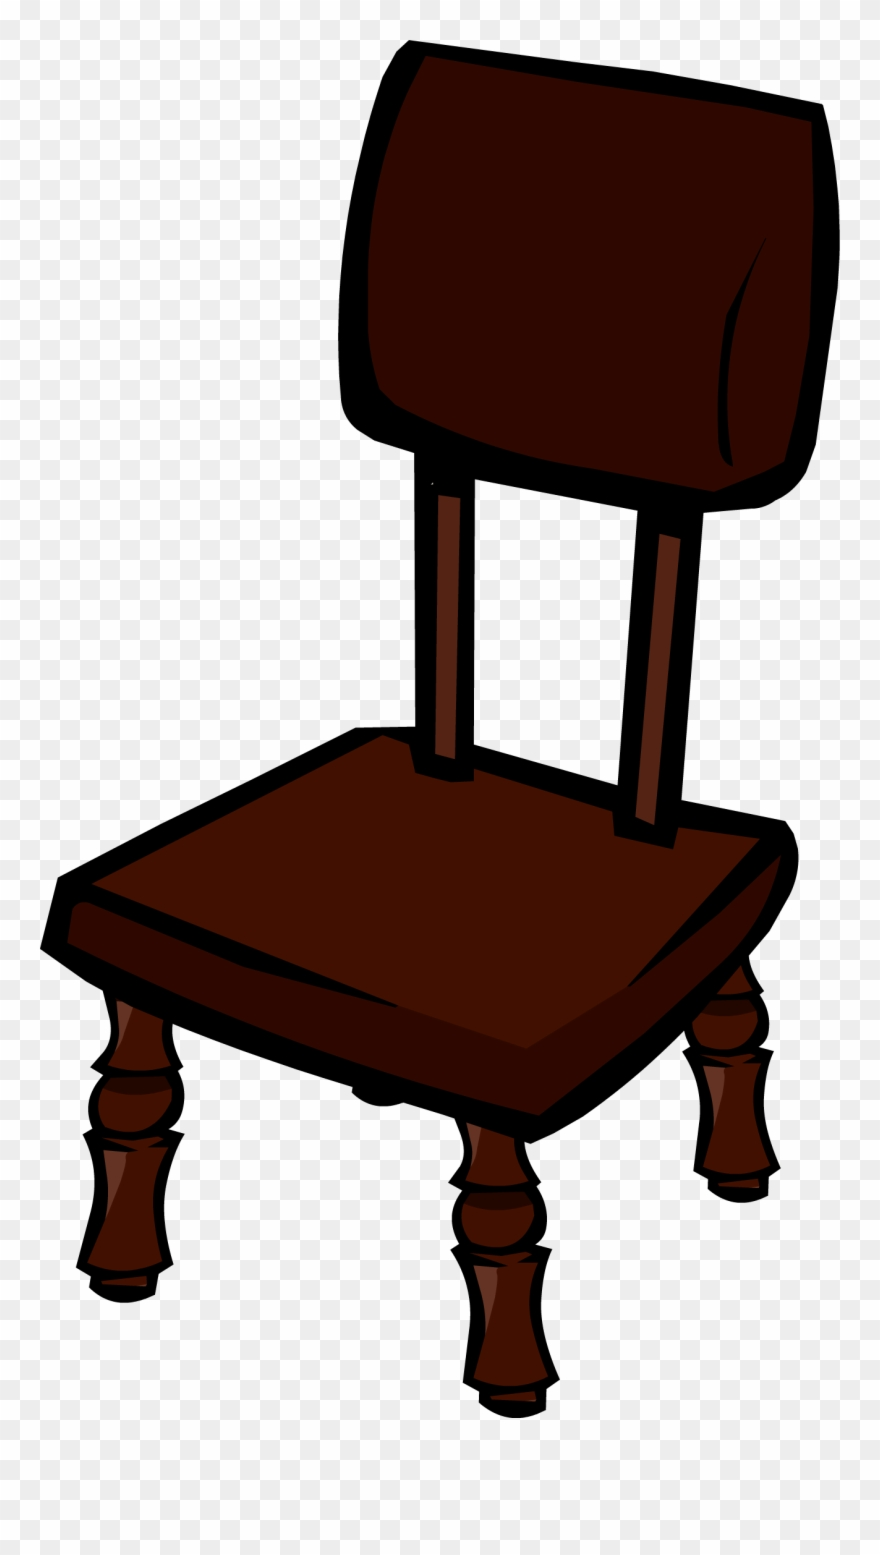 hight resolution of clipart table wooden table club penguin chair furniture png download